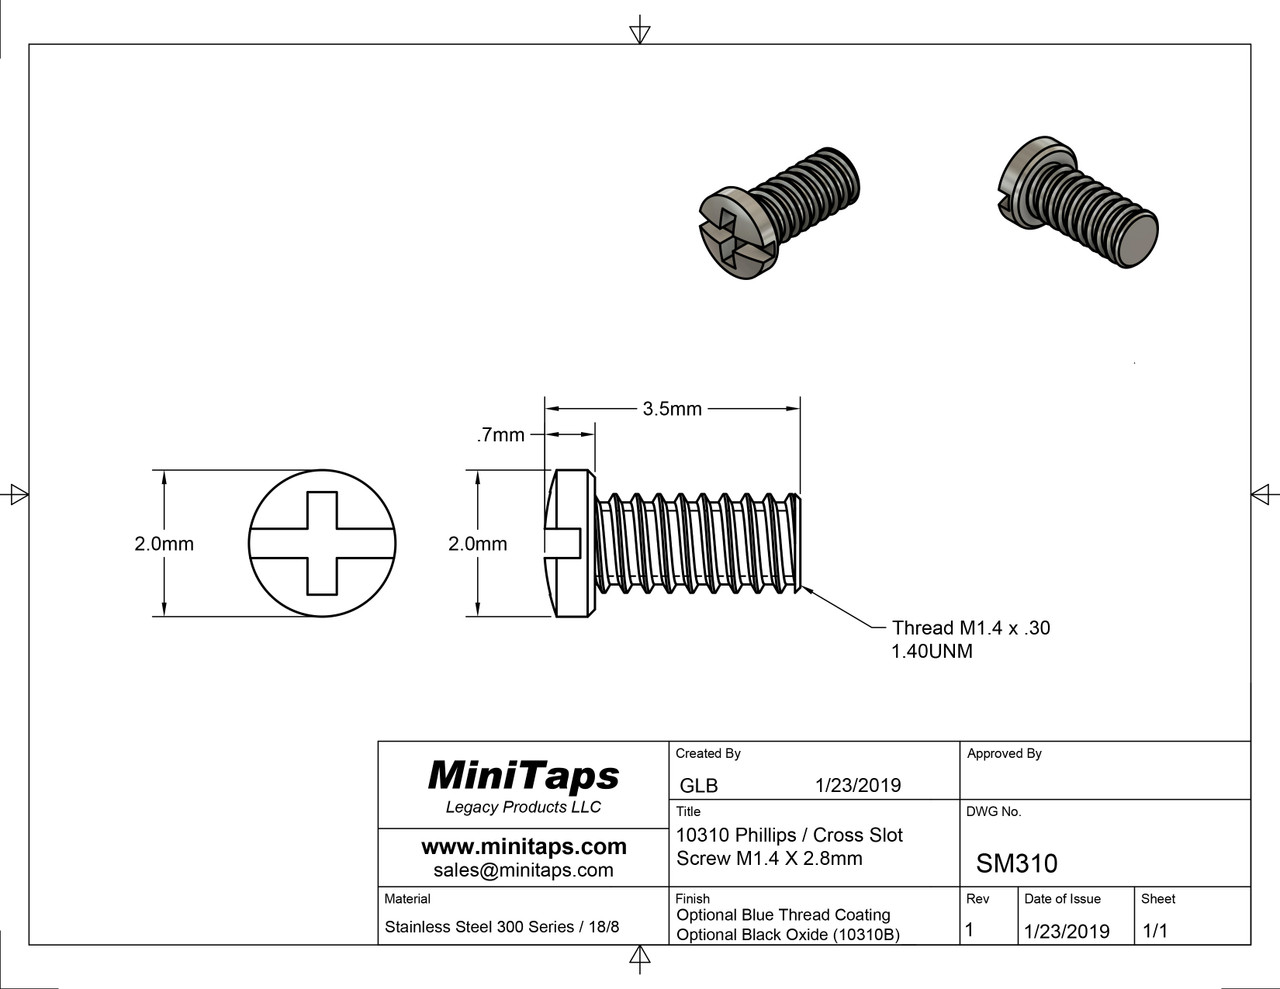 """Machine Screw Pan Head with Philips X-Slot Drive  Thread M1.4, Pitch .30mm, Overall Length 4.0mm, Threaded Length 3.20mm (Equivalent to 1/8"""")  Stainless Steel  Optional coated thread to help prevent screw from working loose.  Price is for 100 count package with bulk pricing available.  Please contact sales@minitaps.com for any additional questions or information."""